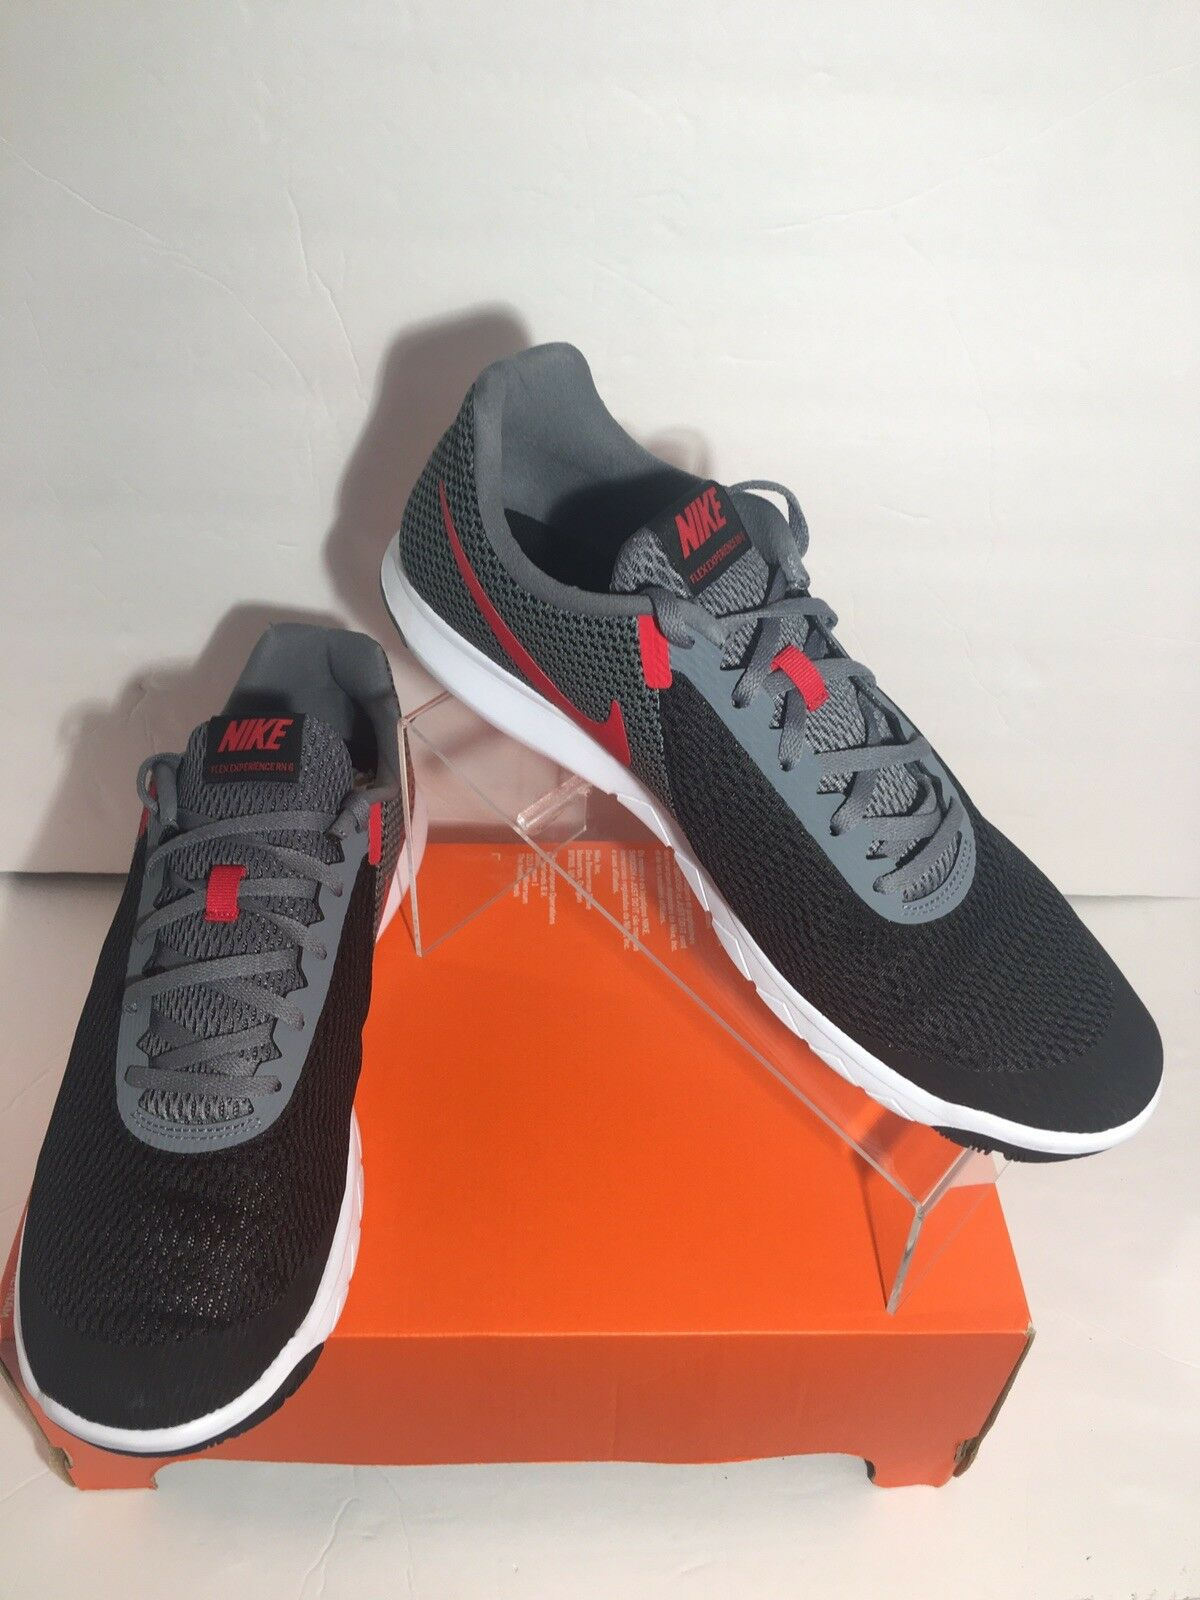 Nike Flex Experience Experience Experience Rn 6 Men's Training Running shoes 881802-011 Size US 12 6a3aee